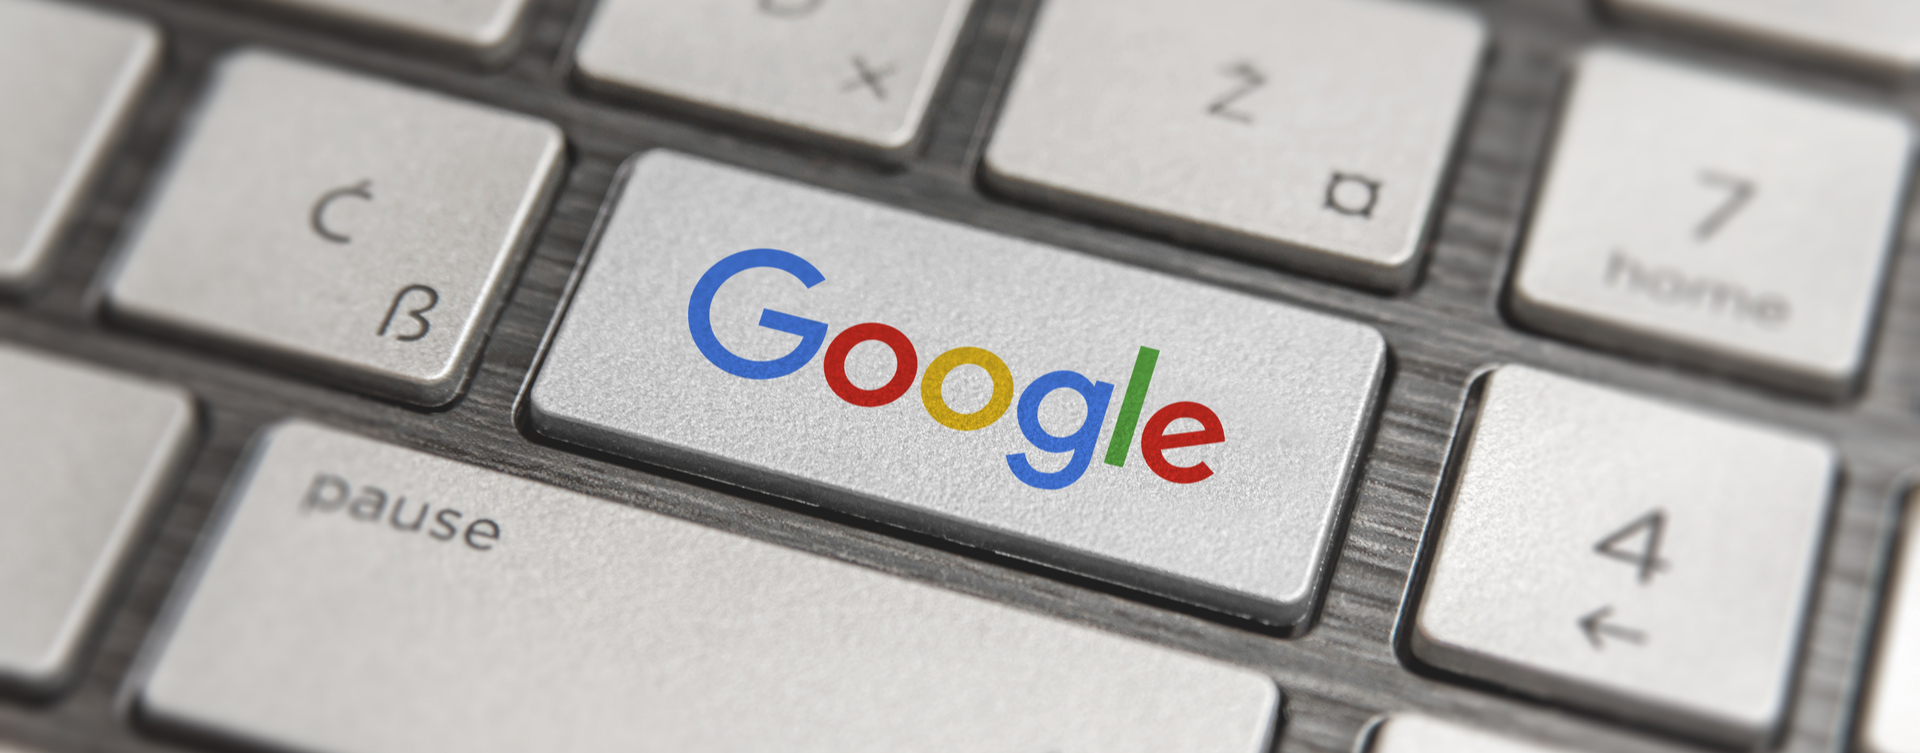 tips to dominate google serp and intent marketing